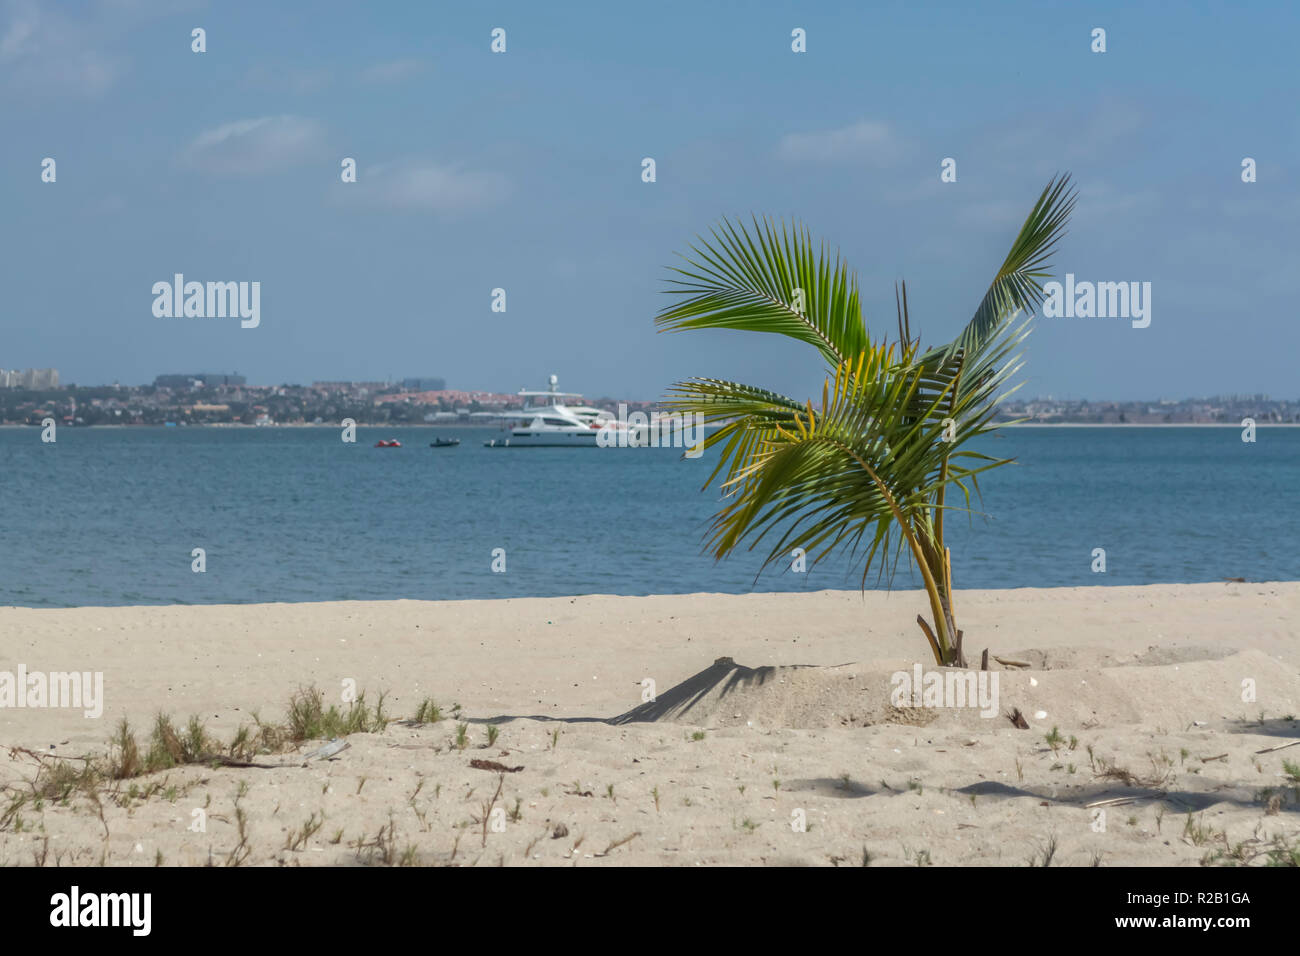 View of palm trees on beach, and boats on water, on the island of Mussulo, Luanda, Angola... - Stock Image